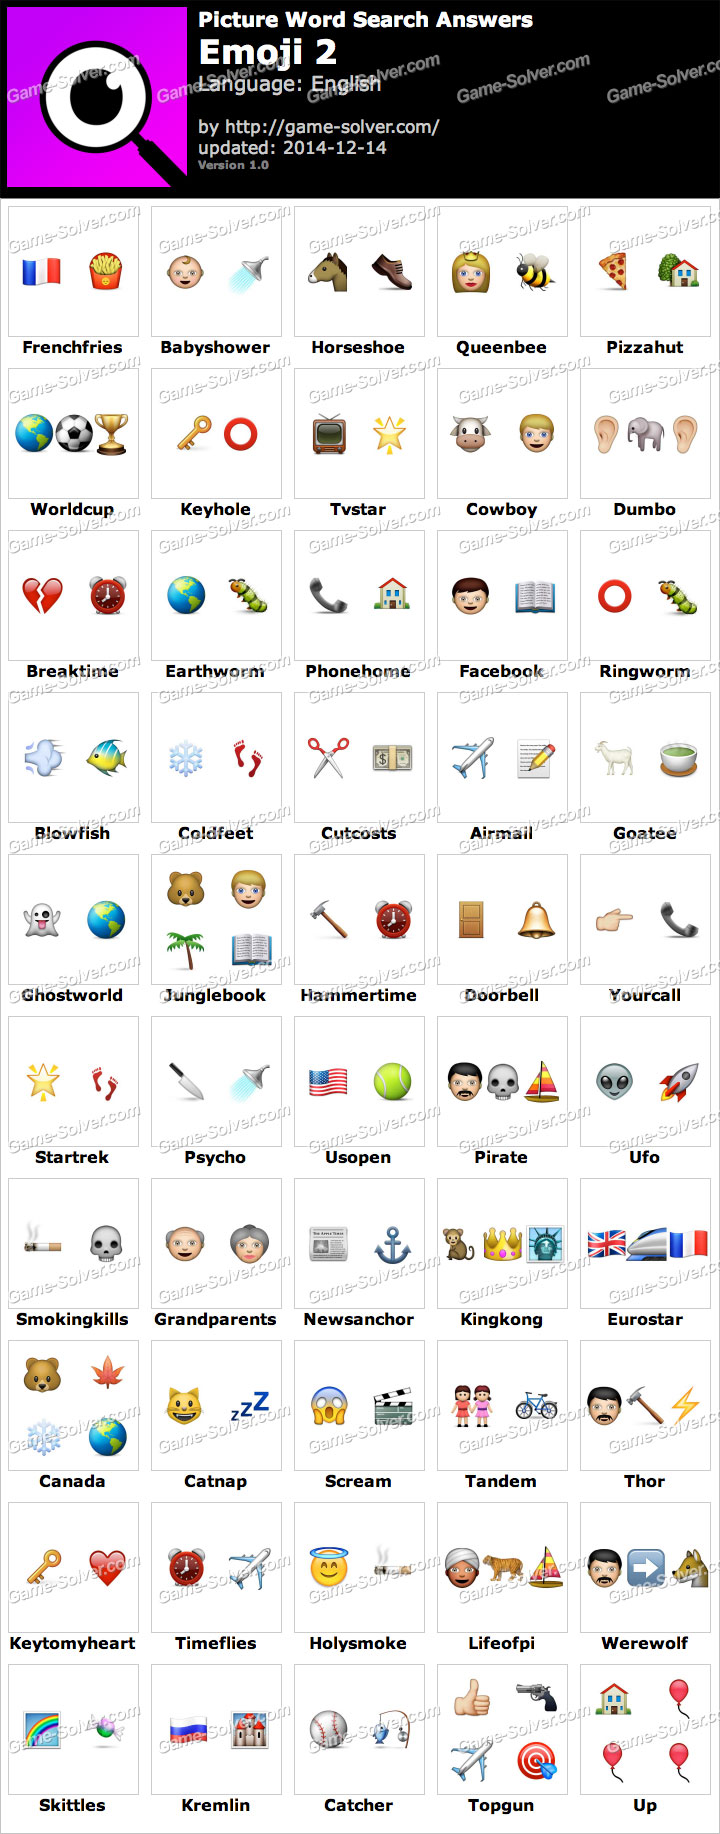 Picture Word Search Emoji 2 Answers - Game Solver